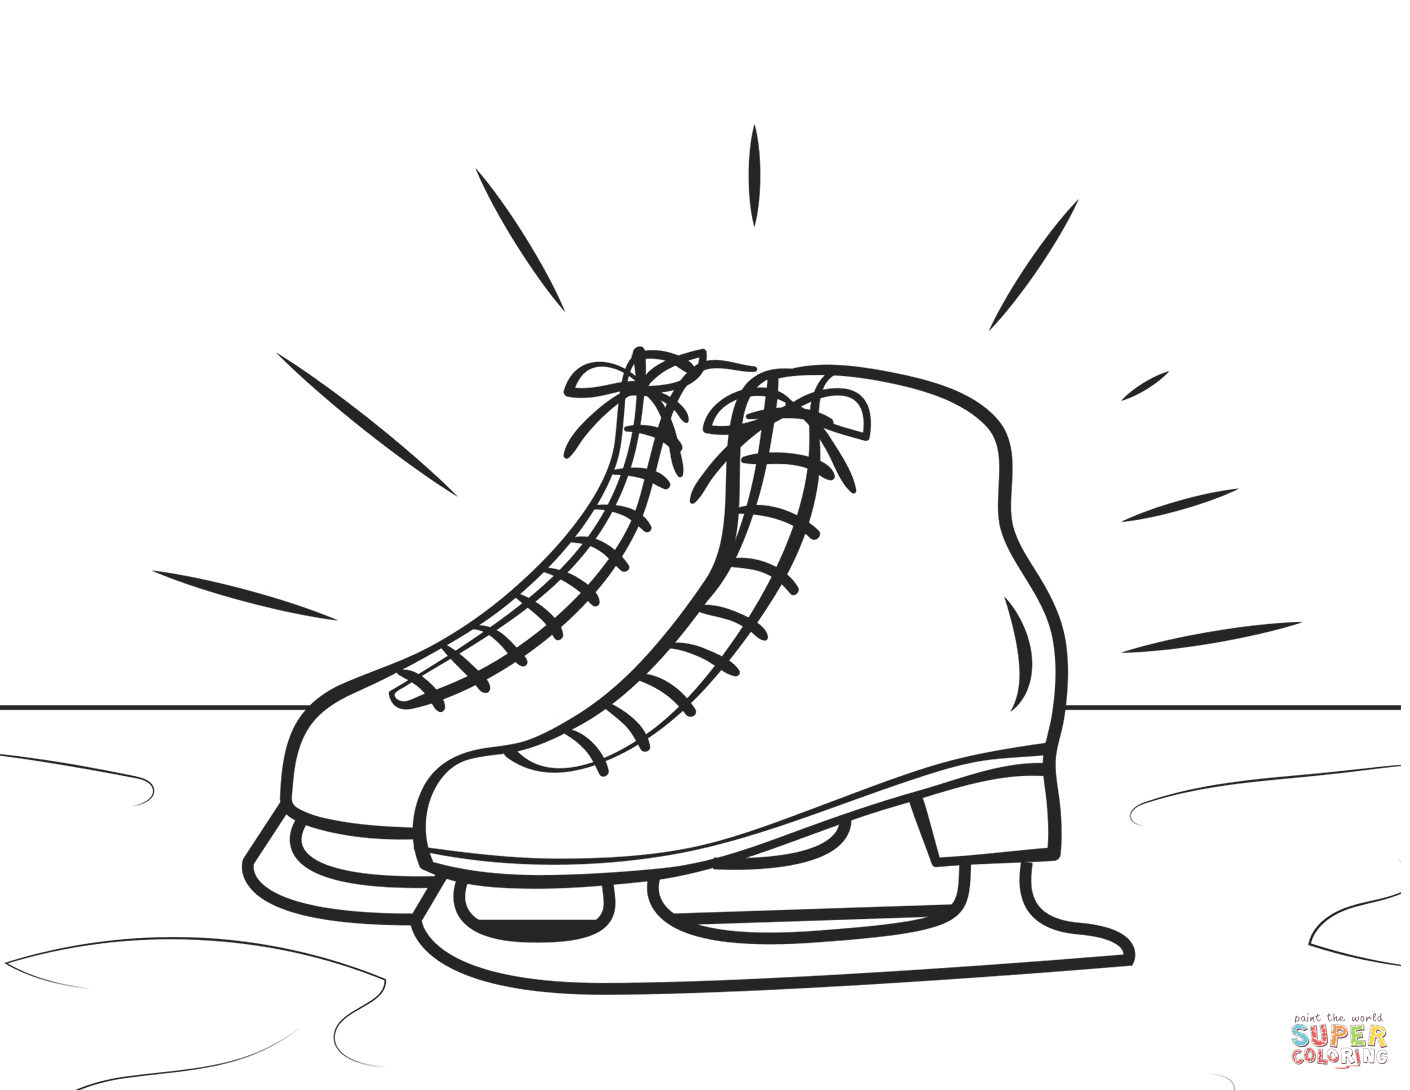 Coloring Pages Figure Skating Coach | www.topsimages.com